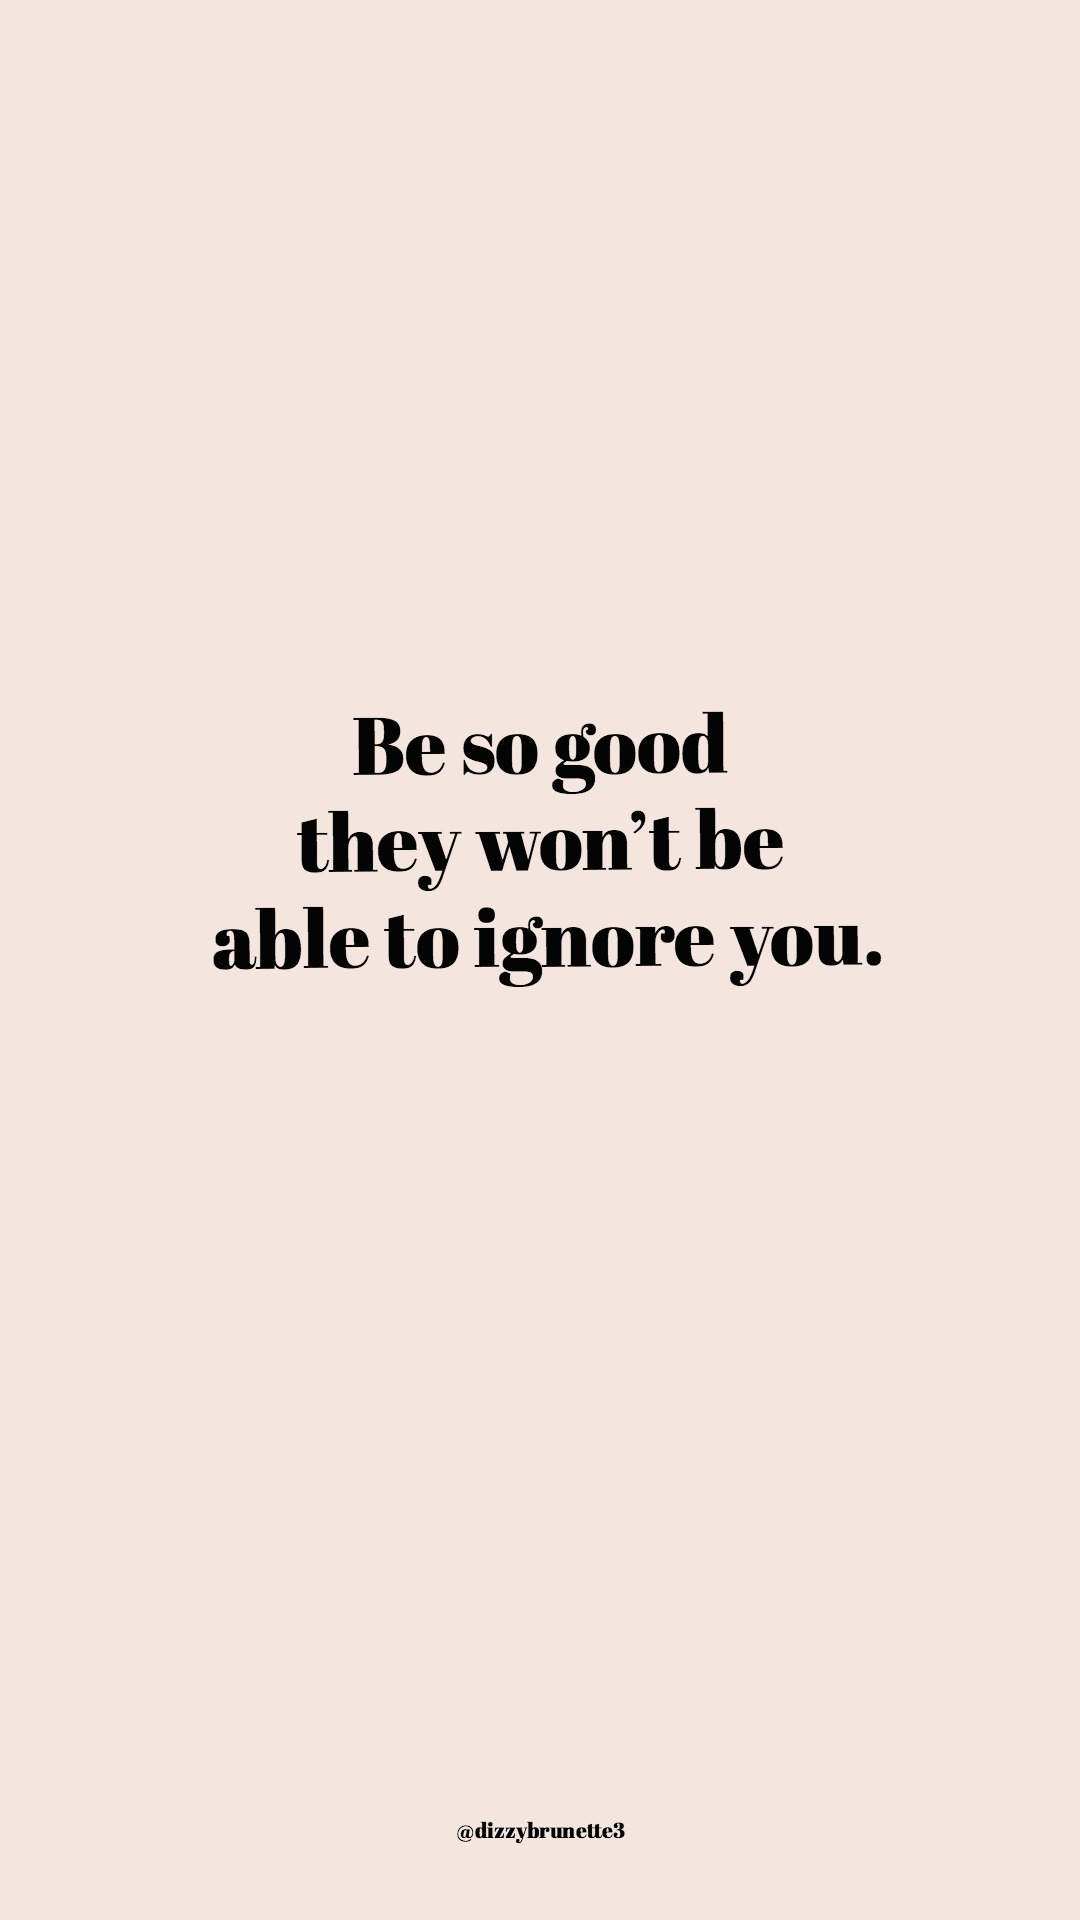 free iphone wallpapers, free phone wallpapers, free phone backgrounds, iphone wallpapers, pretty iphone wallpapers, pink phone wallpapers, phone backgrounds, dizzybrunette3 wallpapers, motivational quotes, inspirational quotes, gilmore girls quotes